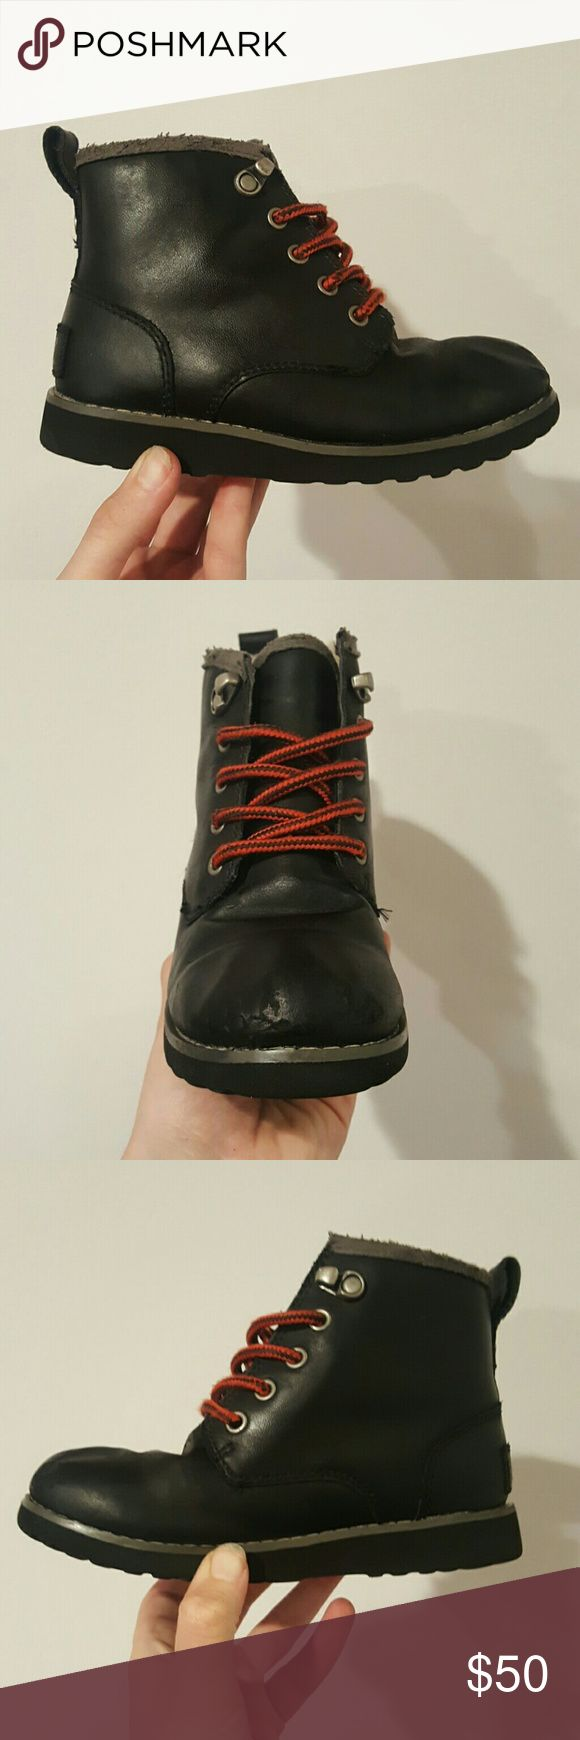 Ugg waterproof boys hiking boots shoes black UGG KIDS WATERPROOF HIKING BOOTS BLACK RED LACES RUBBER SOLR LEATHER UPPER BOYS 12 SHEEPKSKIN LINING EUC SMALL SCUFFS IN FRONT COVERES BY SHOE POLISH NOT NOTICEABLE SO CUTE UGG Shoes Rain & Snow Boots